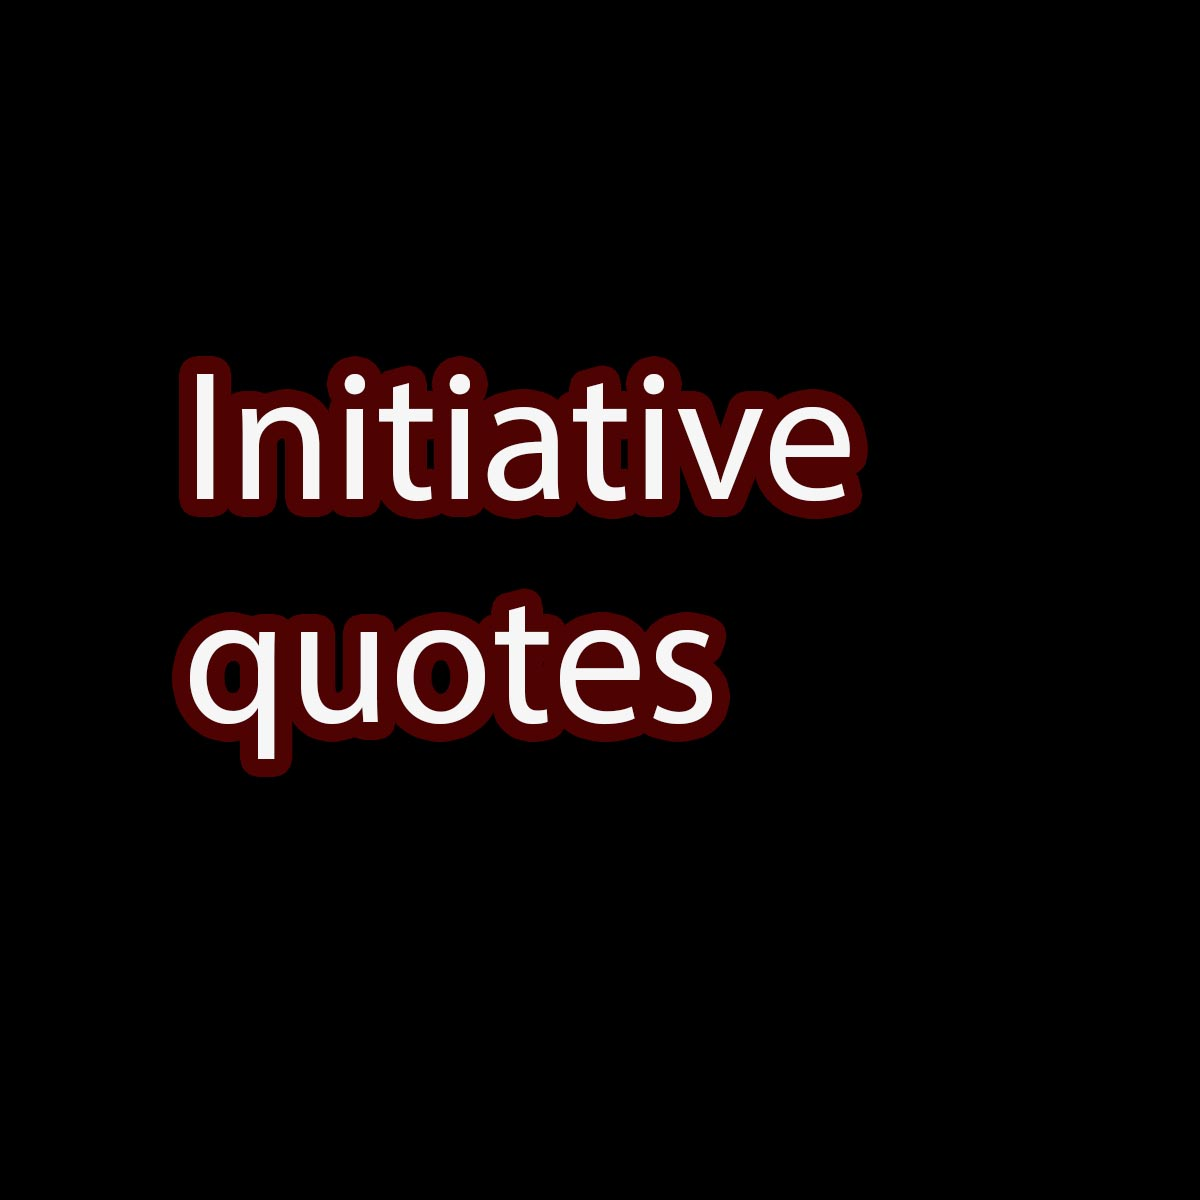 initiative quotes saying